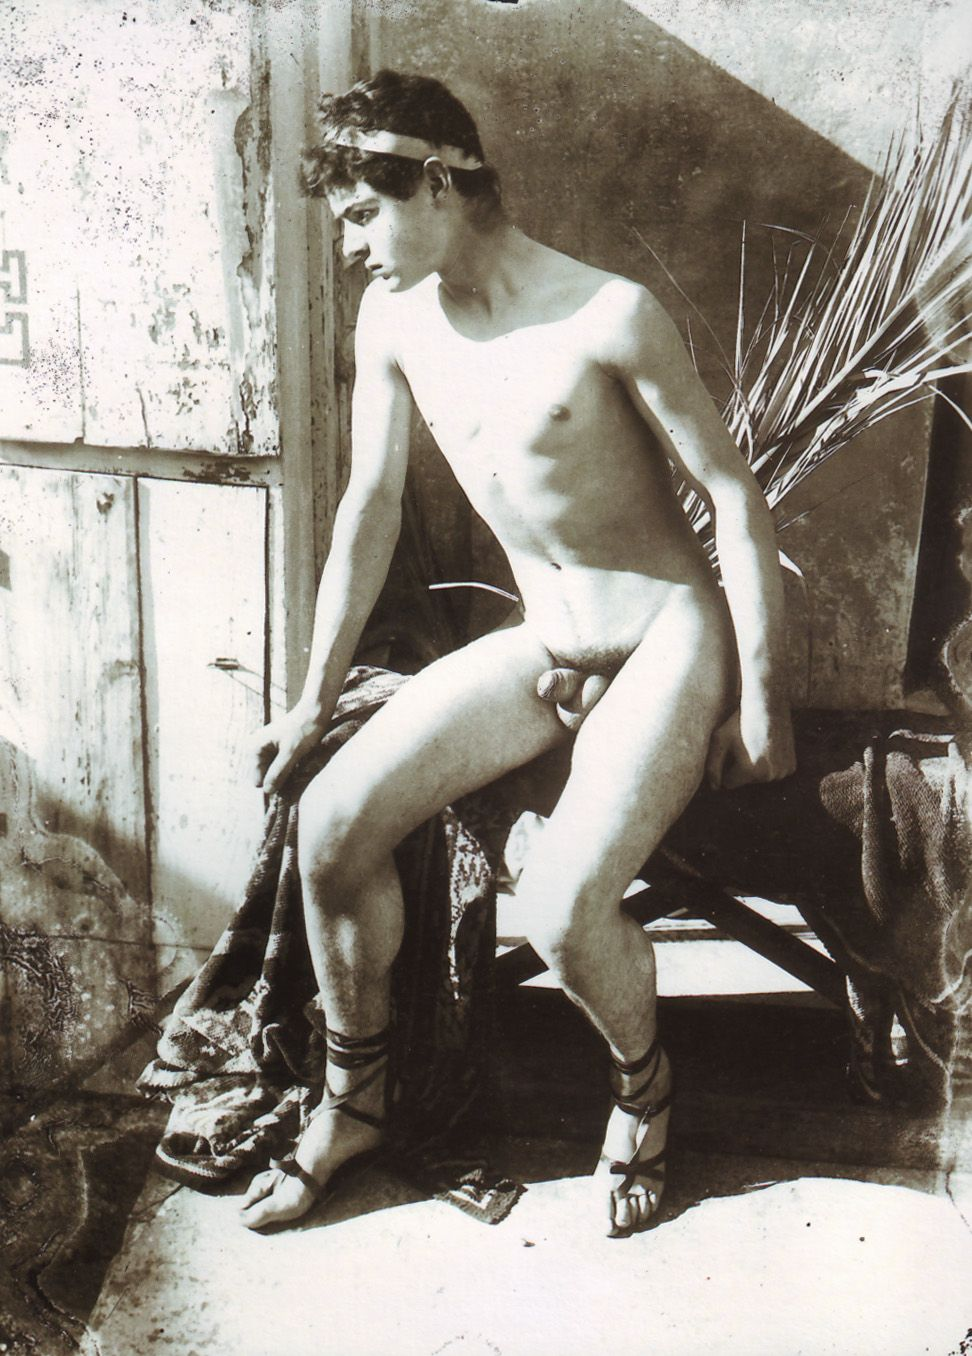 Babes naked boy with chaps black